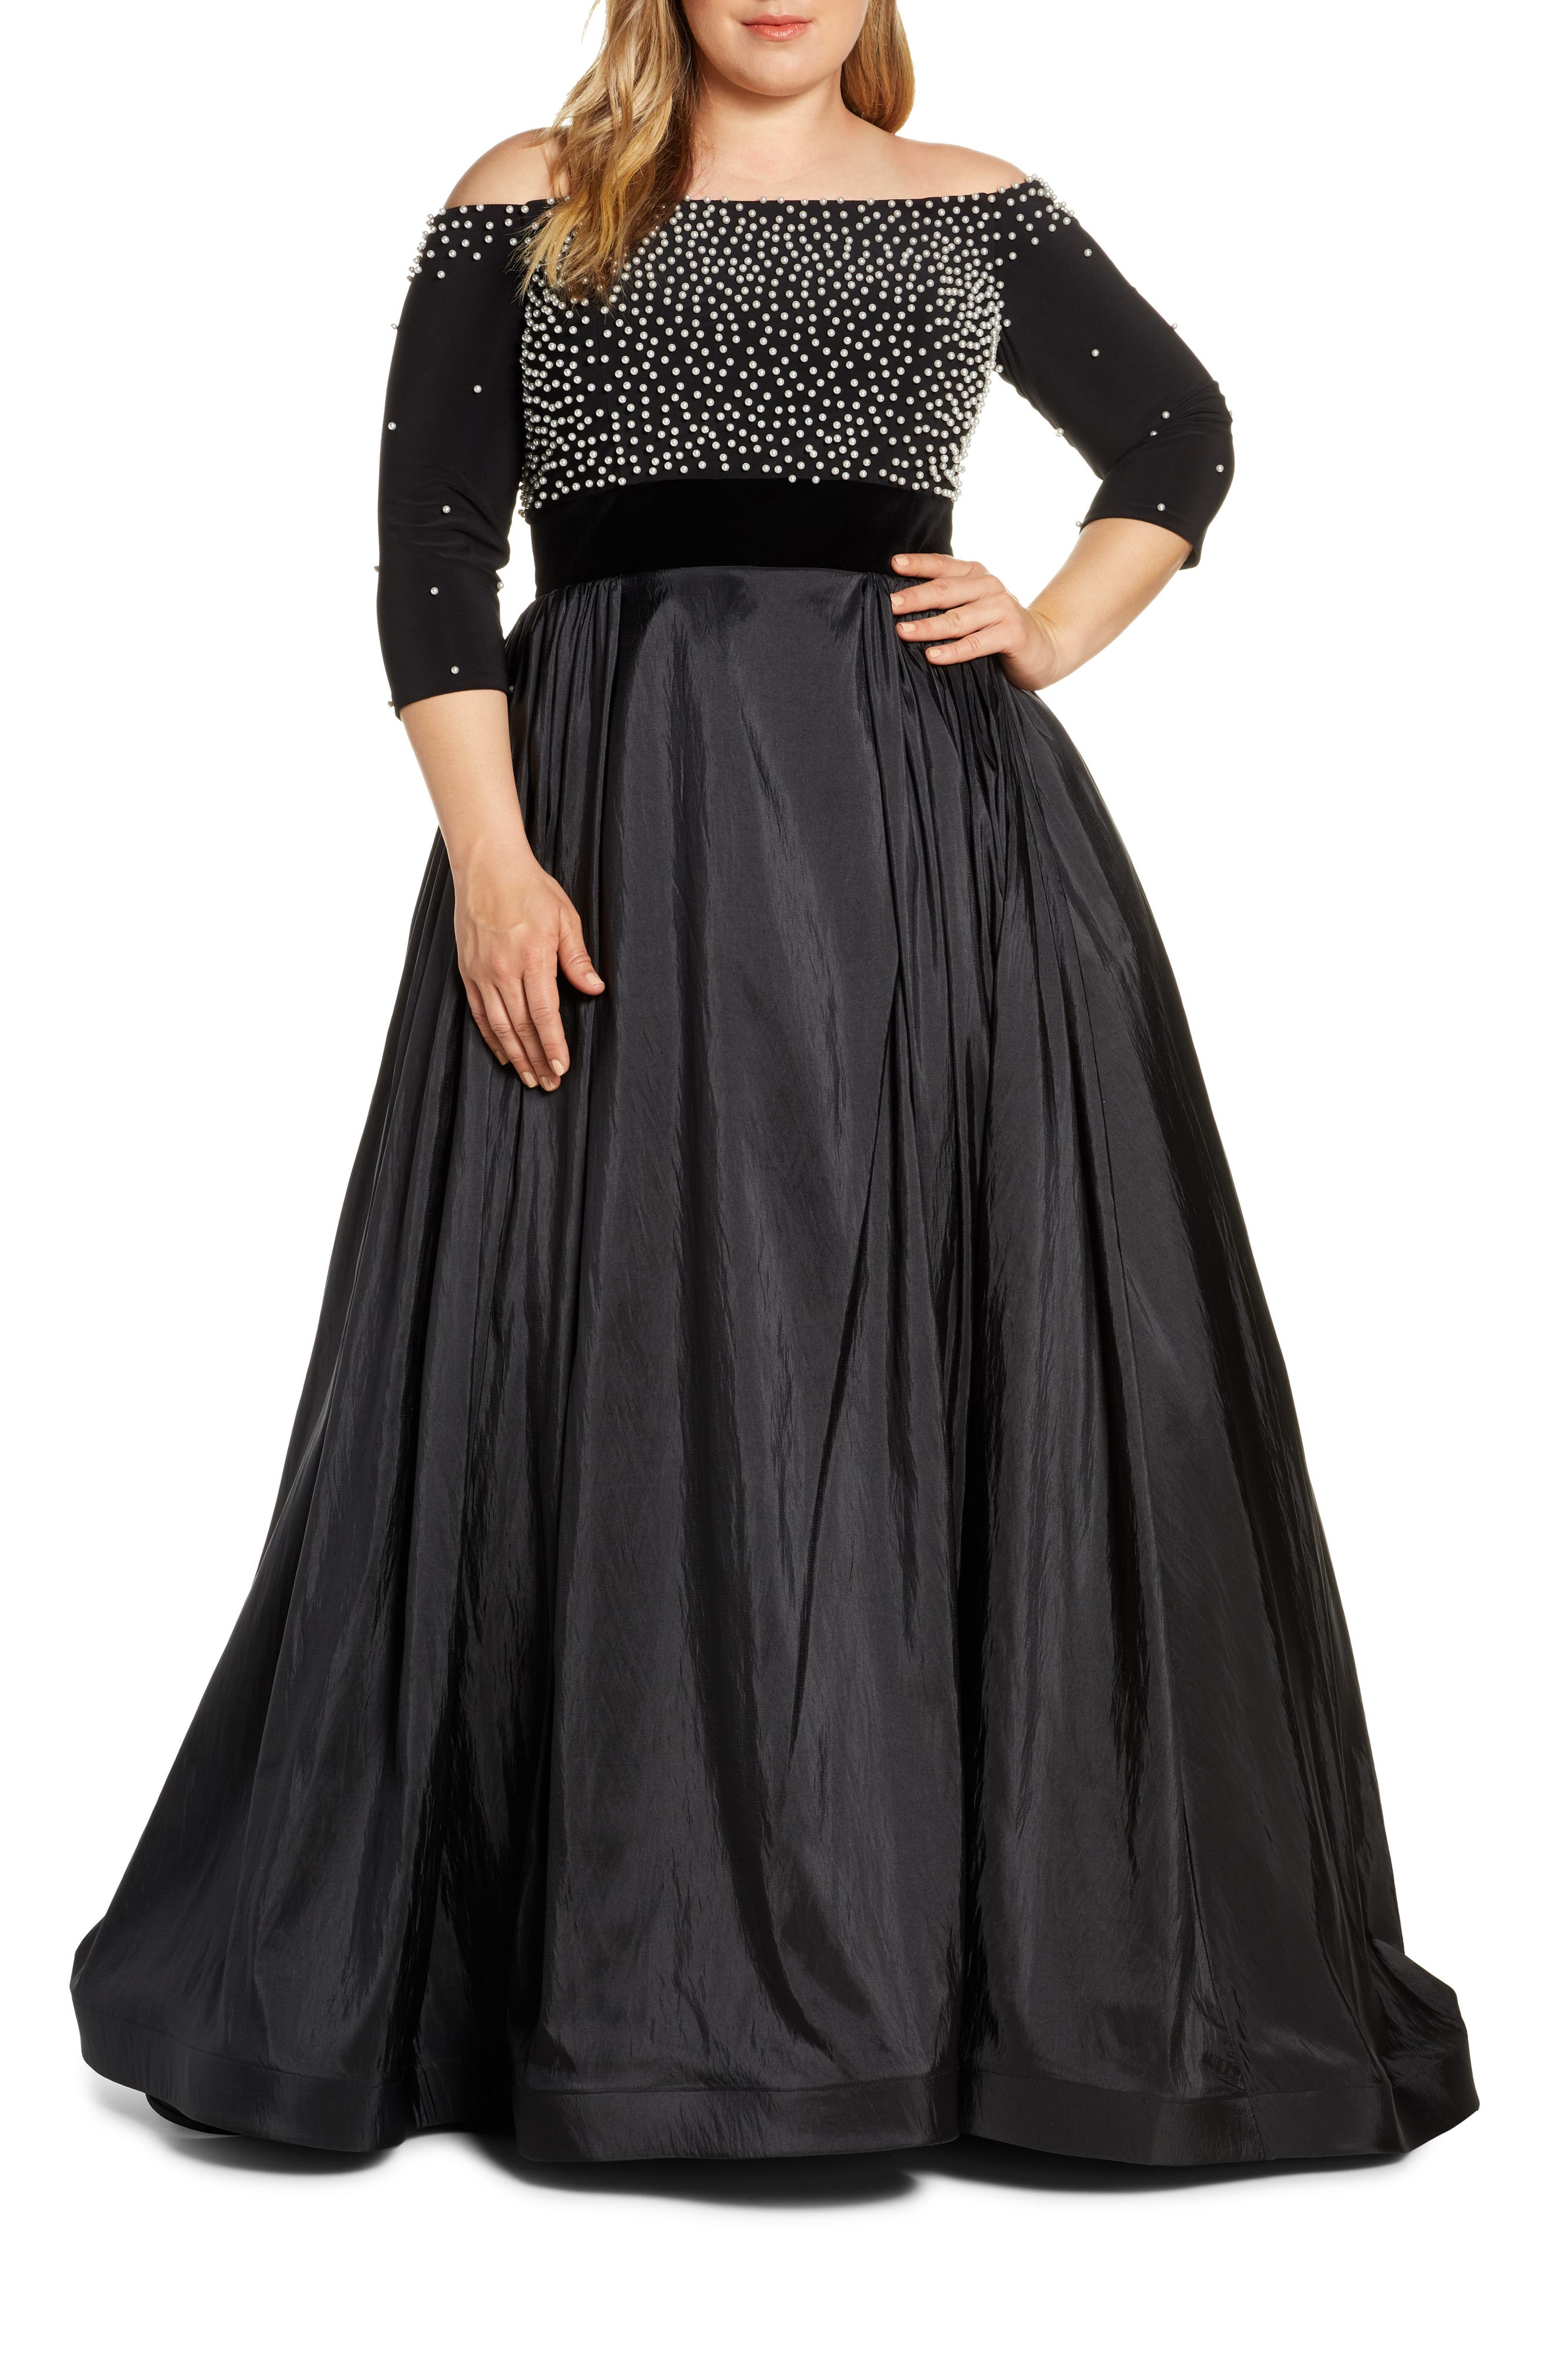 Plus Size MAC Duggal Pearl Beaded Off The Shoulder Ballgown, Black